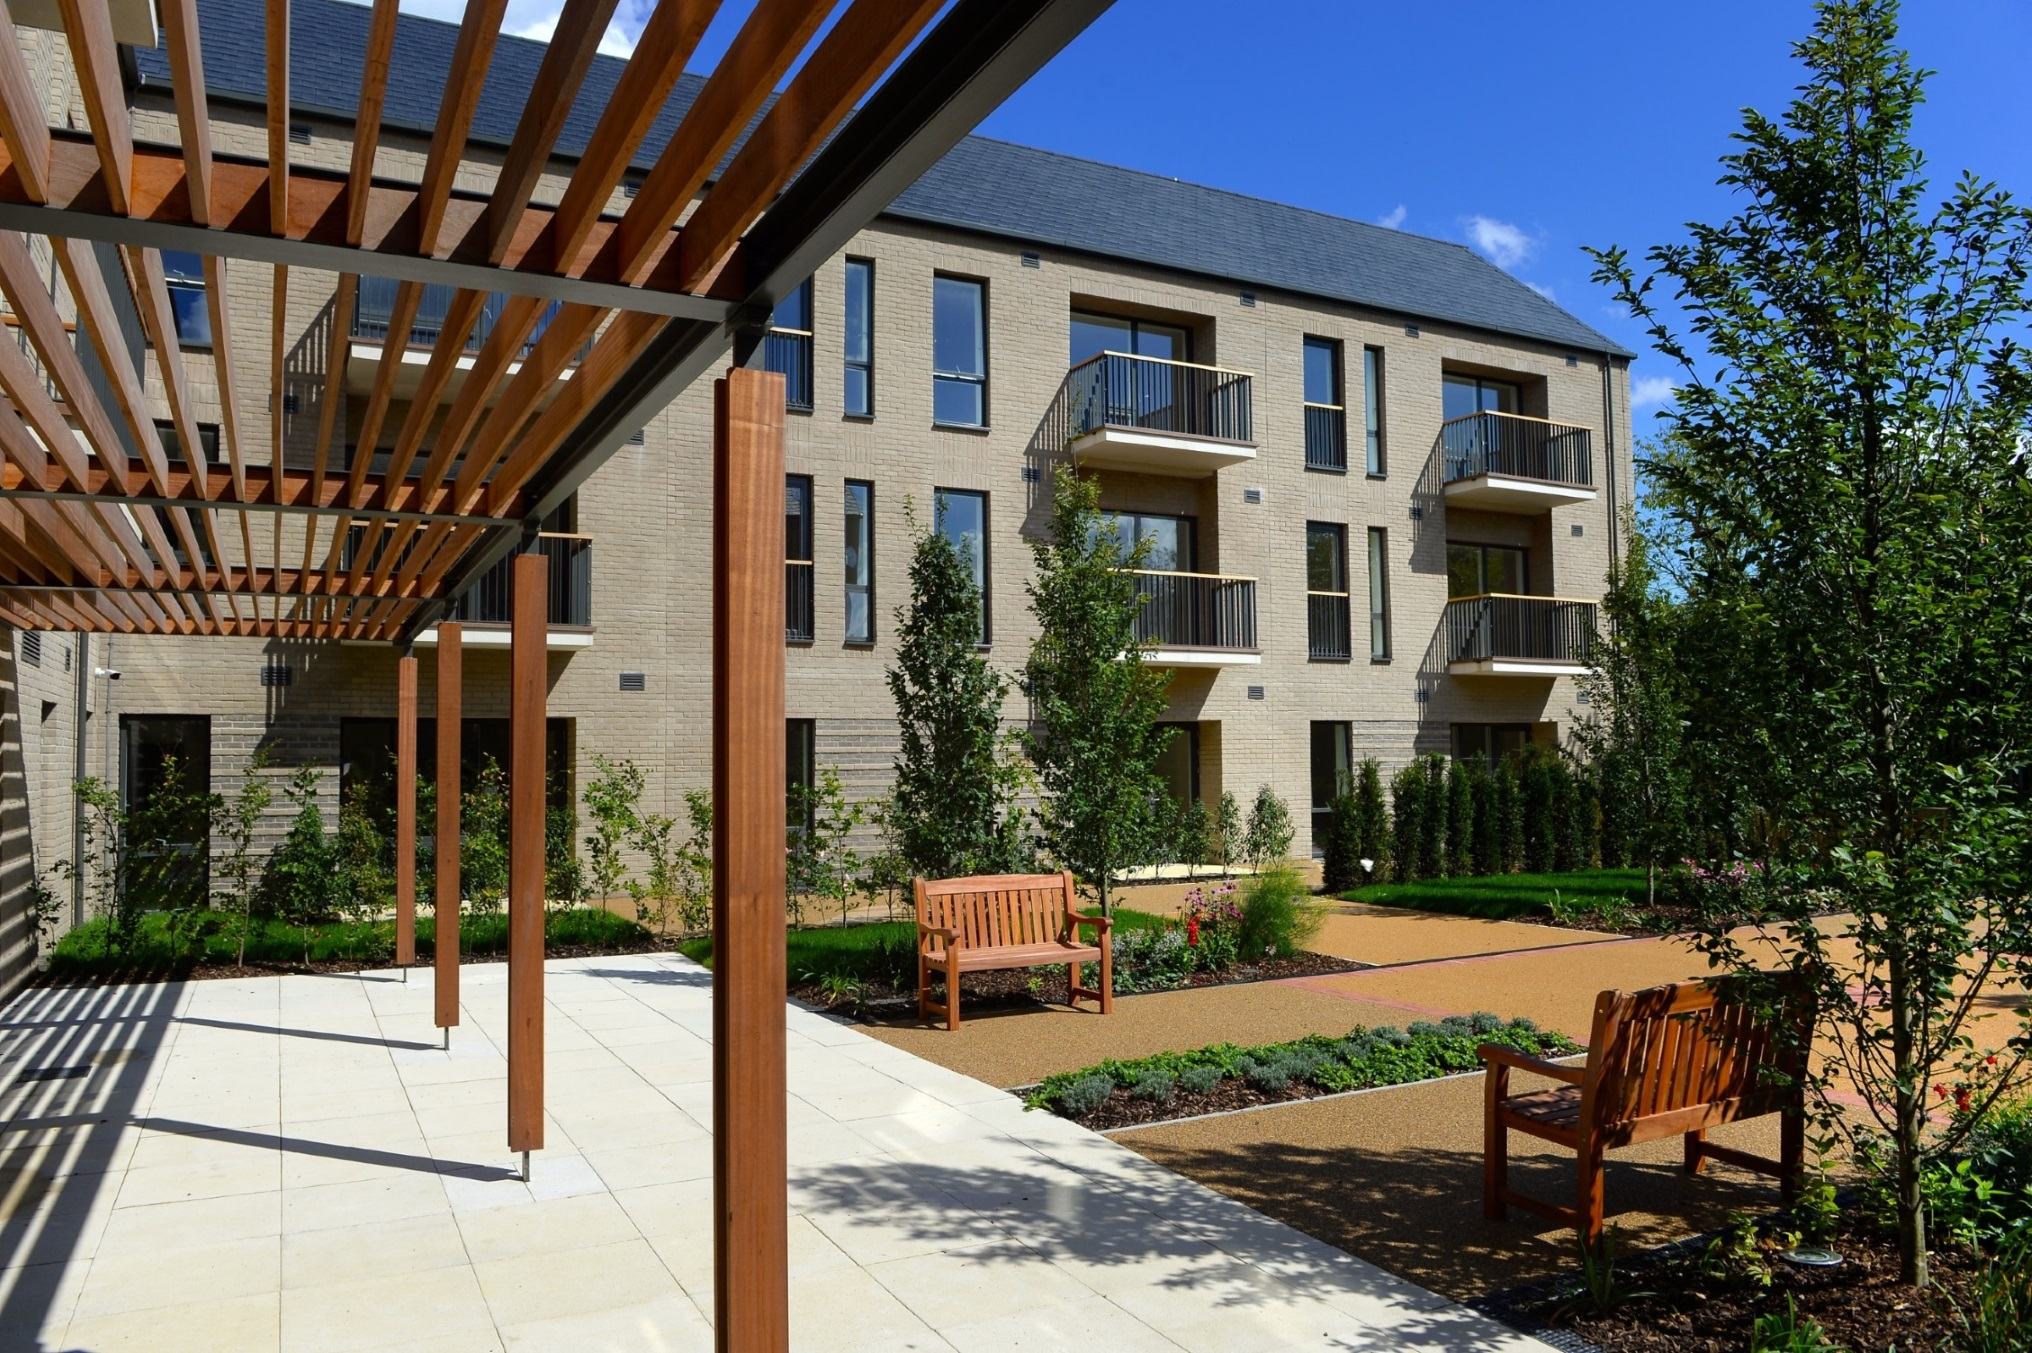 Lovell-built Lapwing Apartments in Peterborough 'Highly Commended' in national industry awards